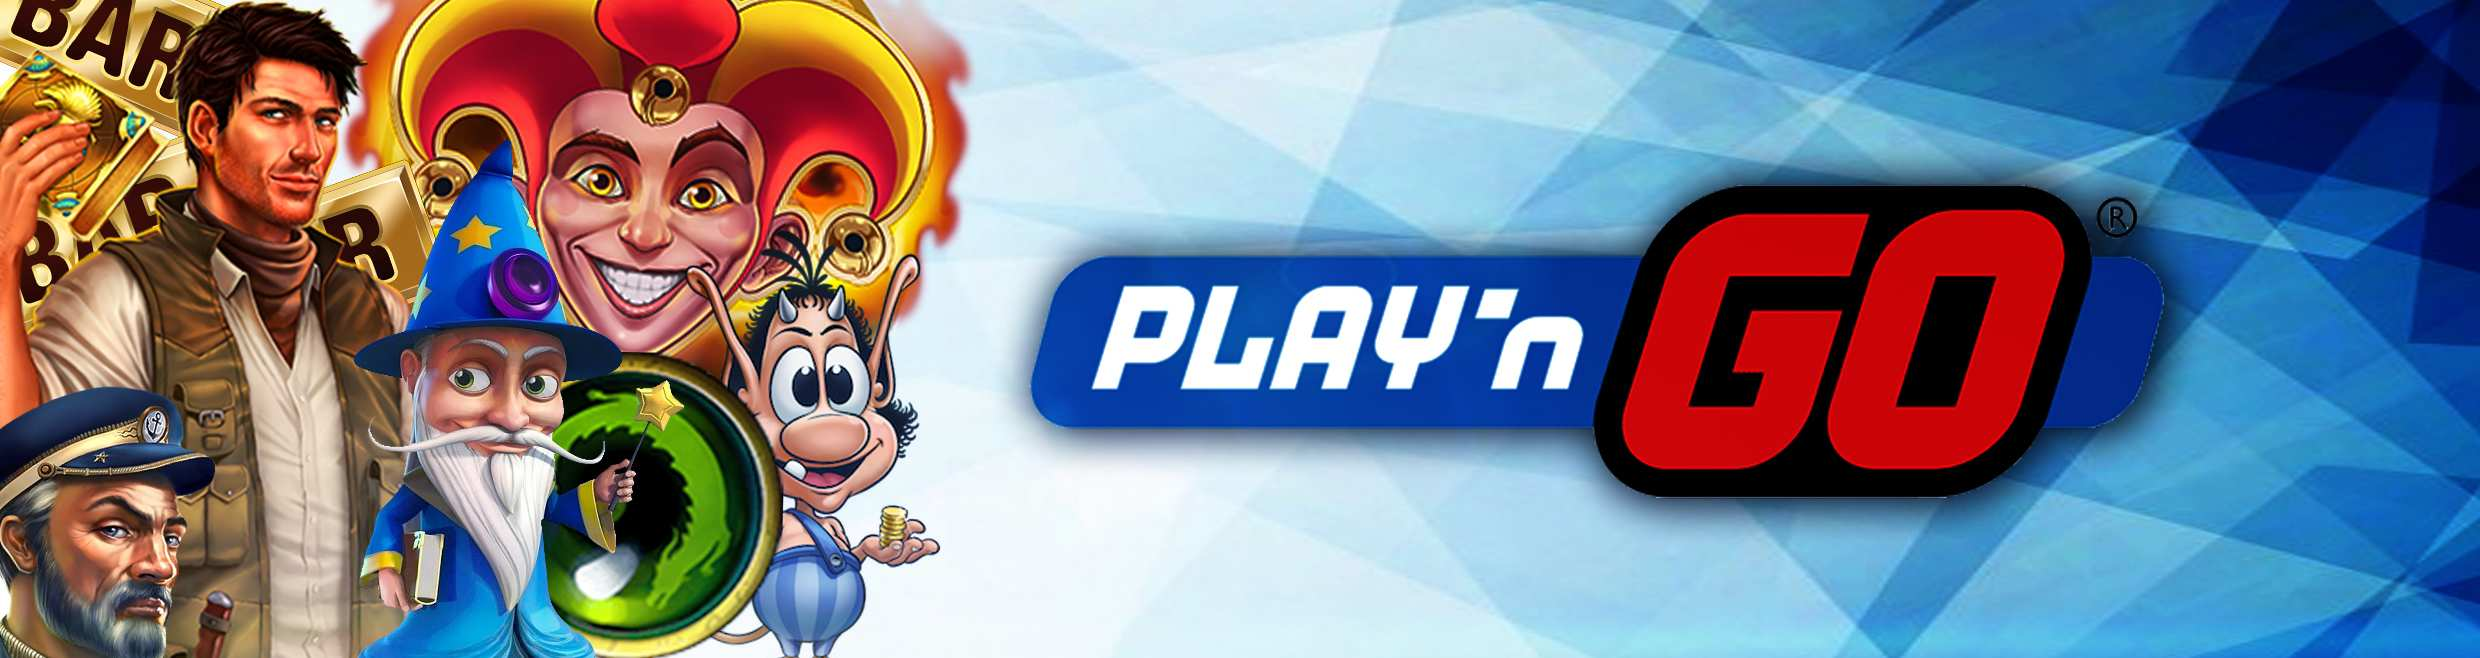 Play N Go Best Mobile Casino Software Provider